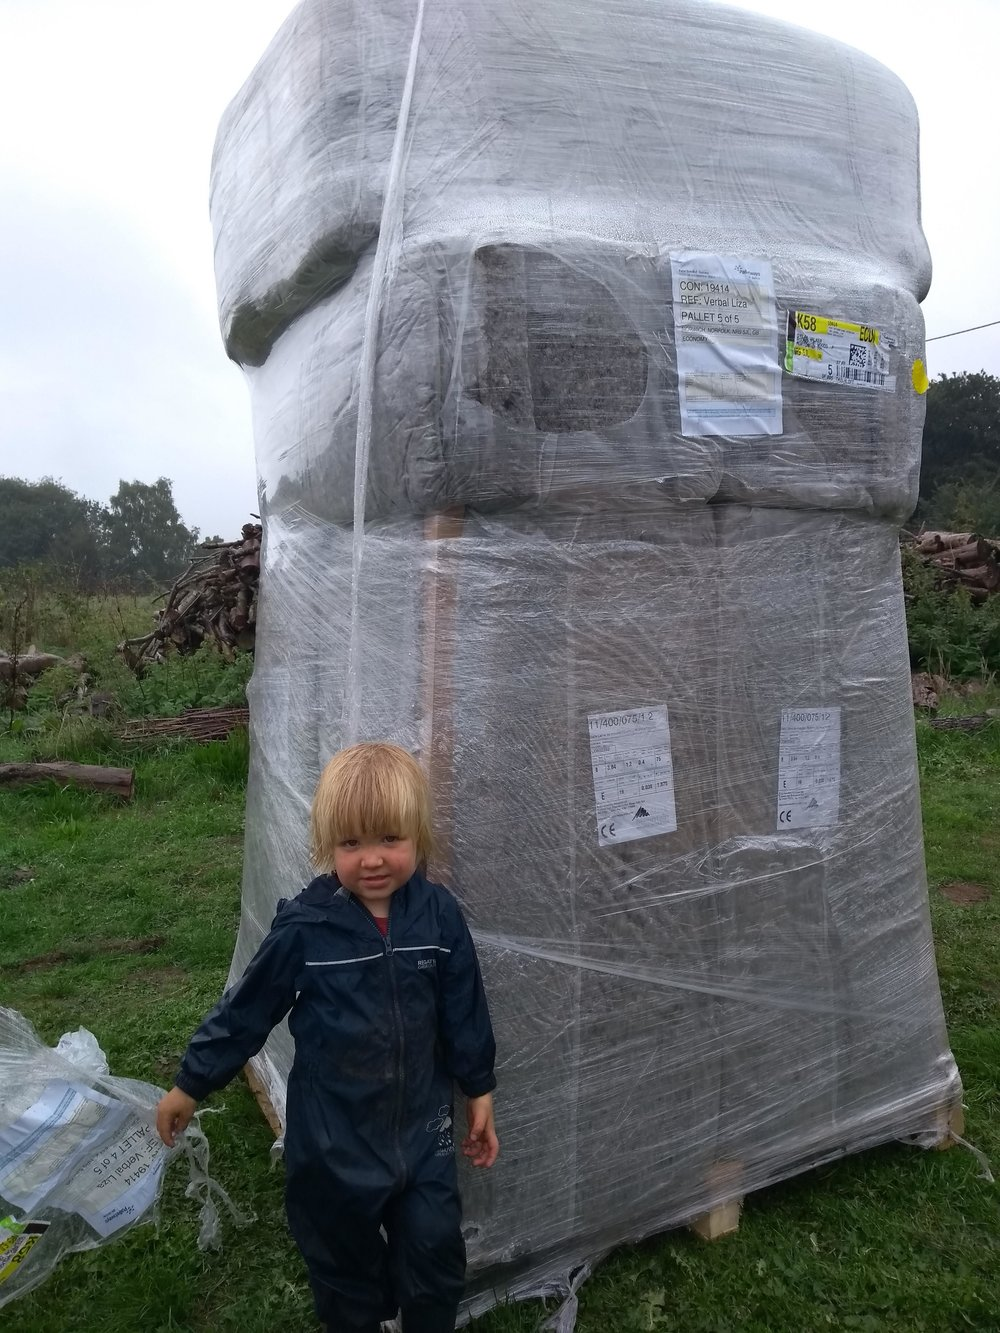 Sheeps wool natural insulation delivery with the boys helping to move it under cover